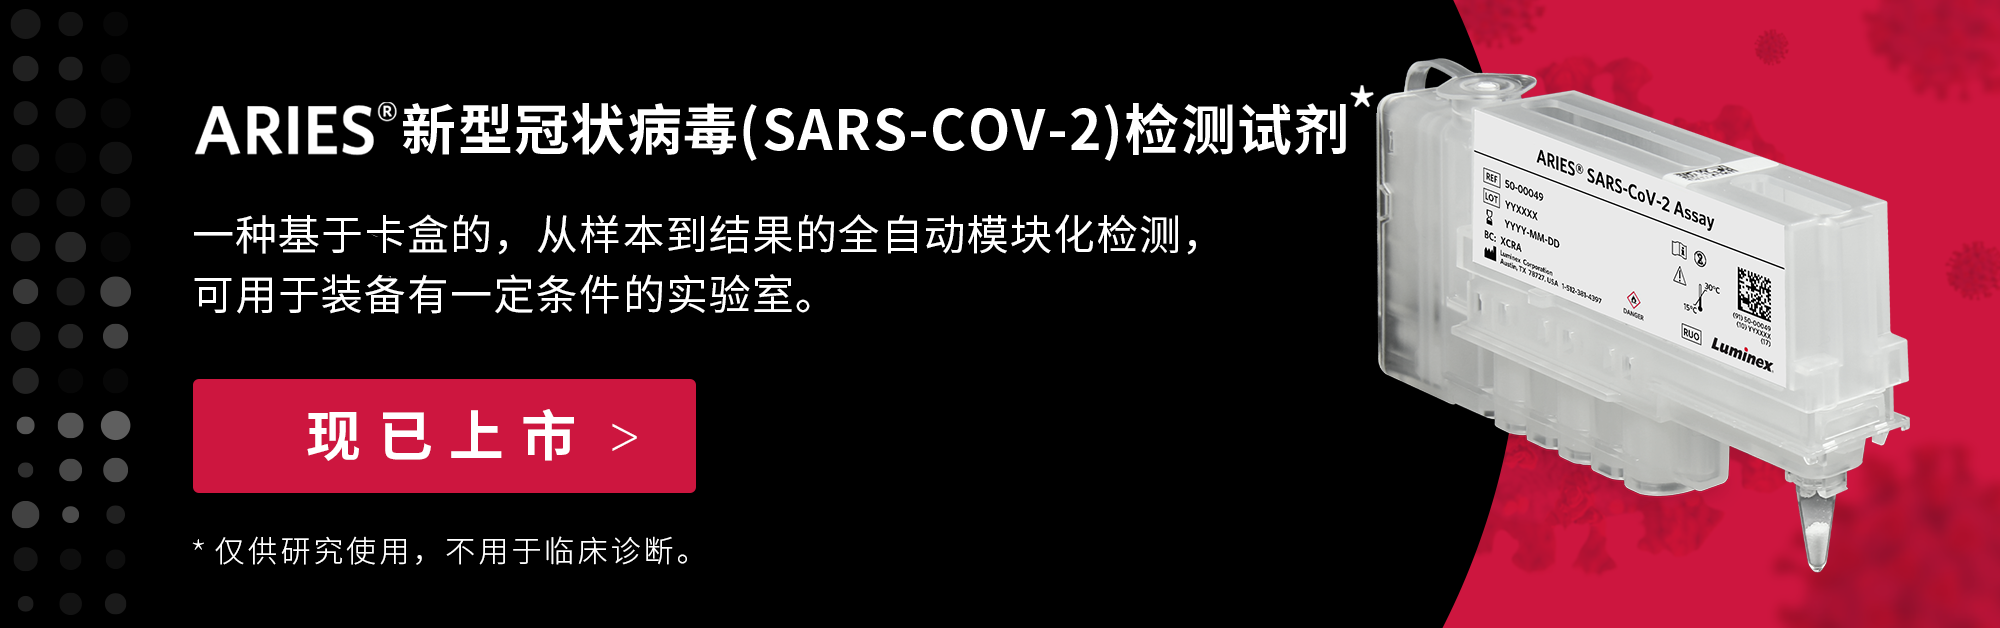 ARIES SARS-CoV-2 Assay - Now Authorized by the FDA Under EUA